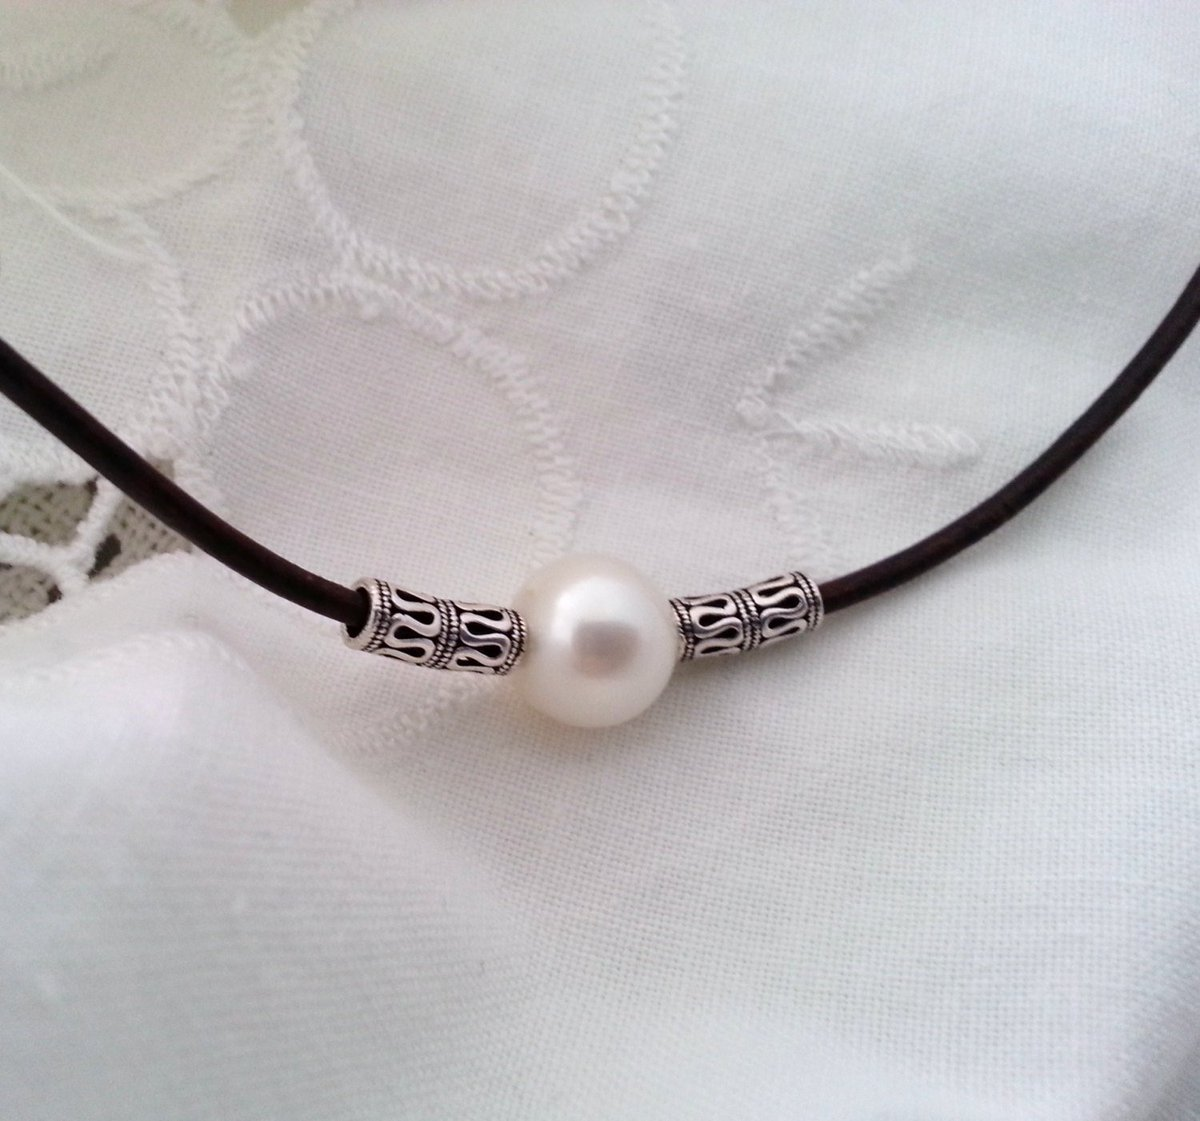 Leather choker, sterling silver and freshwater pearl tuppu.net/79cafd7 #Etsy #CaneladePlata #DailyJewelry